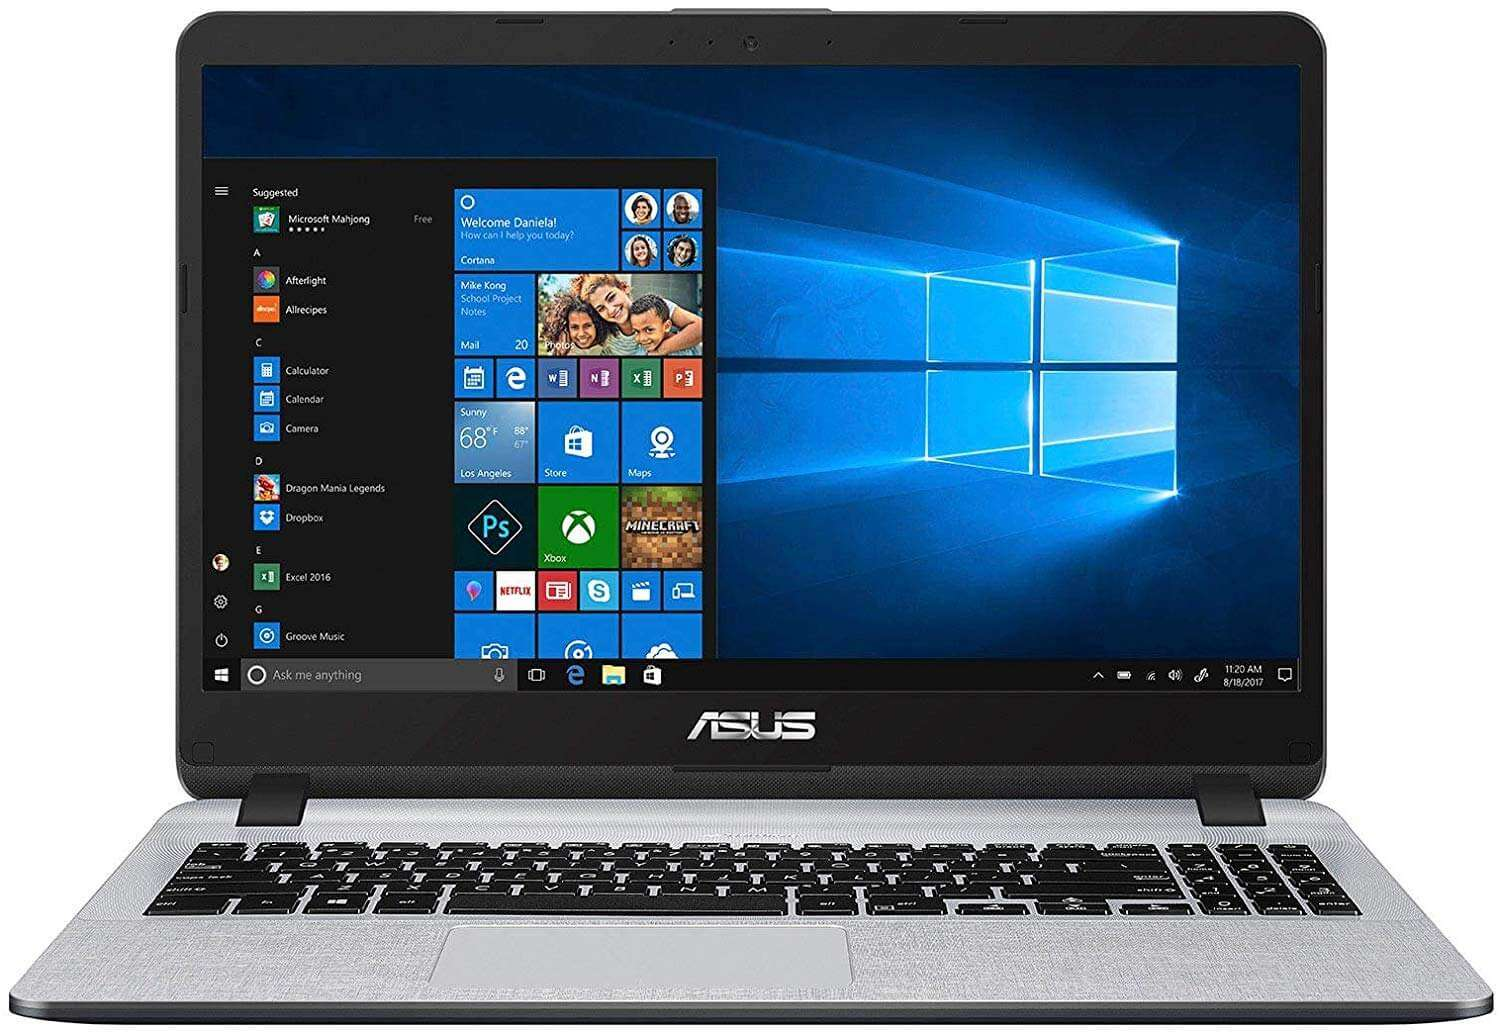 ASUS Vivobook X507UB-EJ296T Laptop With 15.6-Inch Display, Core i7 Processor/8GB RAM/1TB HDD/2GB NVIDIA GeForce MX110 Graphic Card Grey